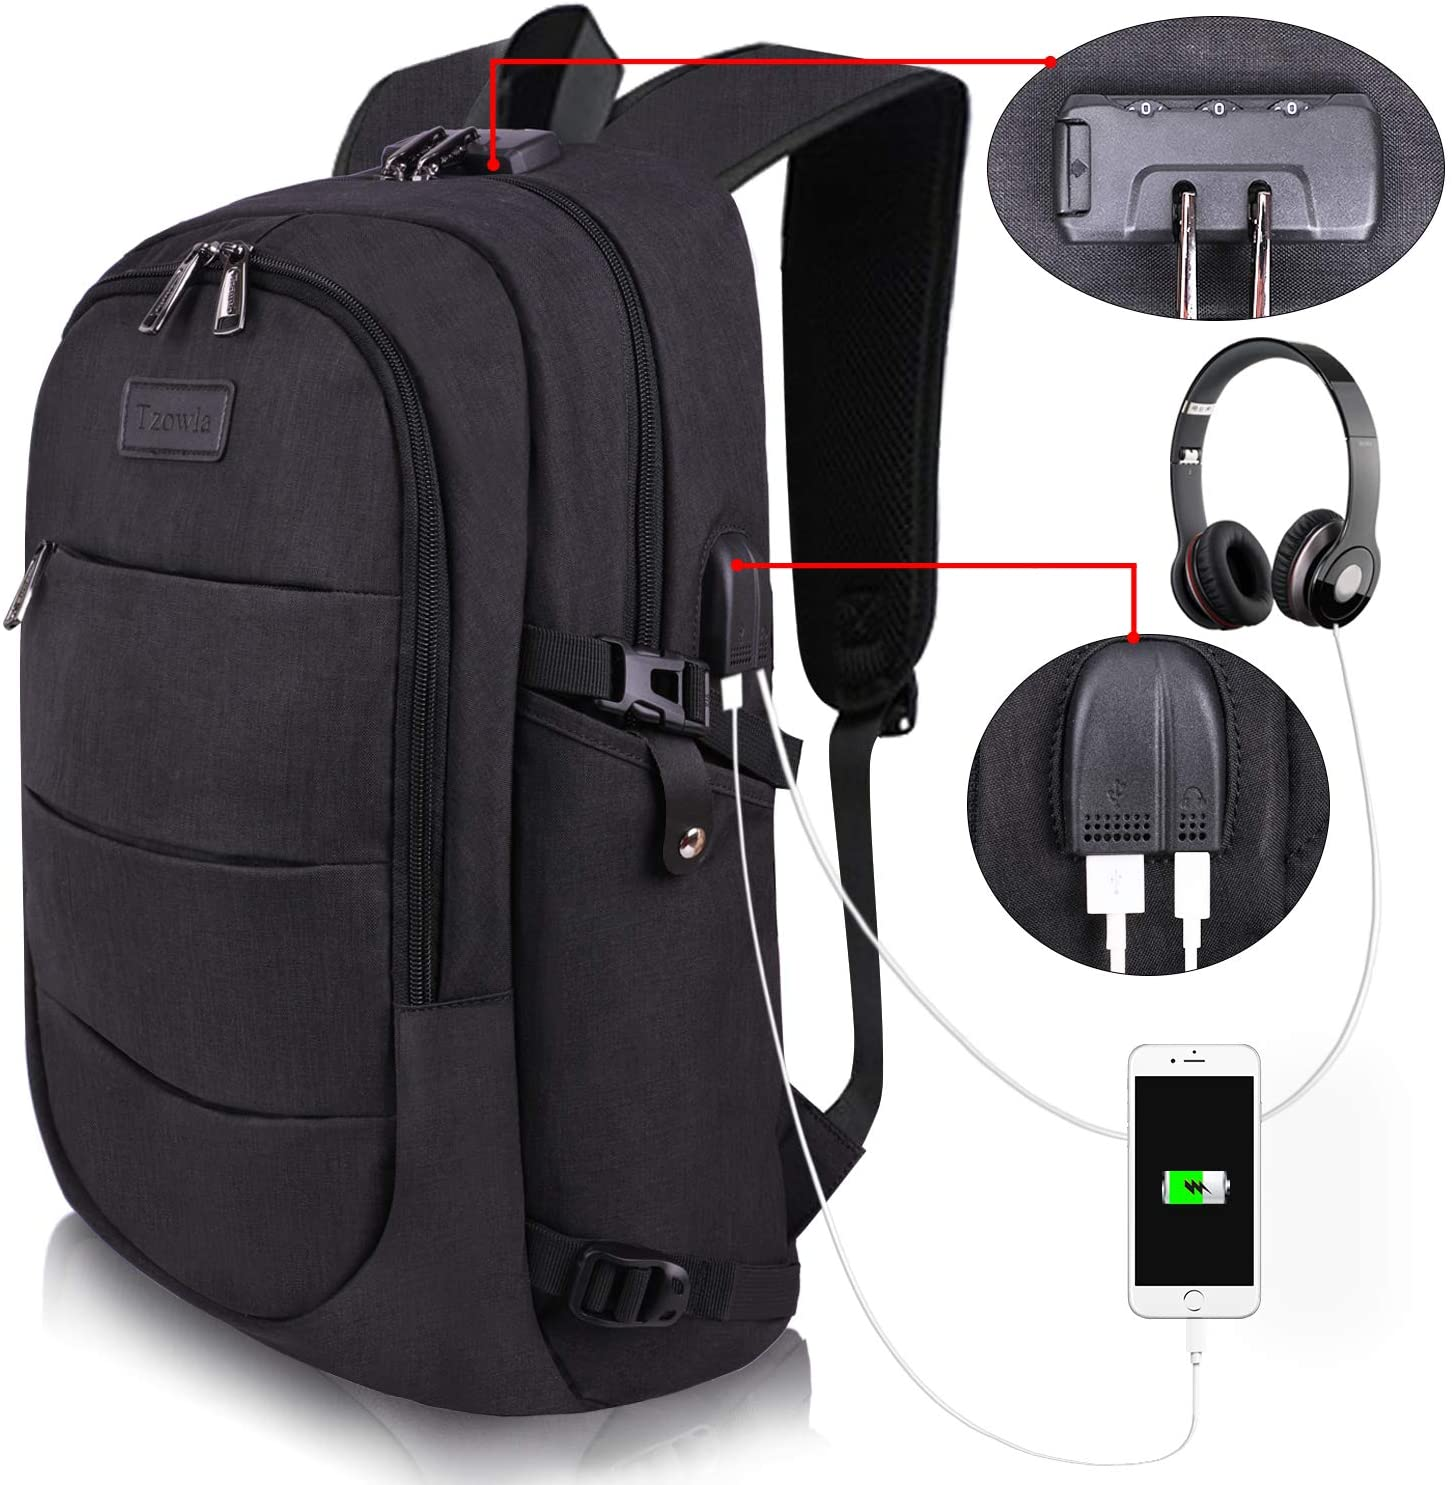 Travel Laptop Backpack Water Resistant Anti-Theft Bag with USB Charging Port and Lock